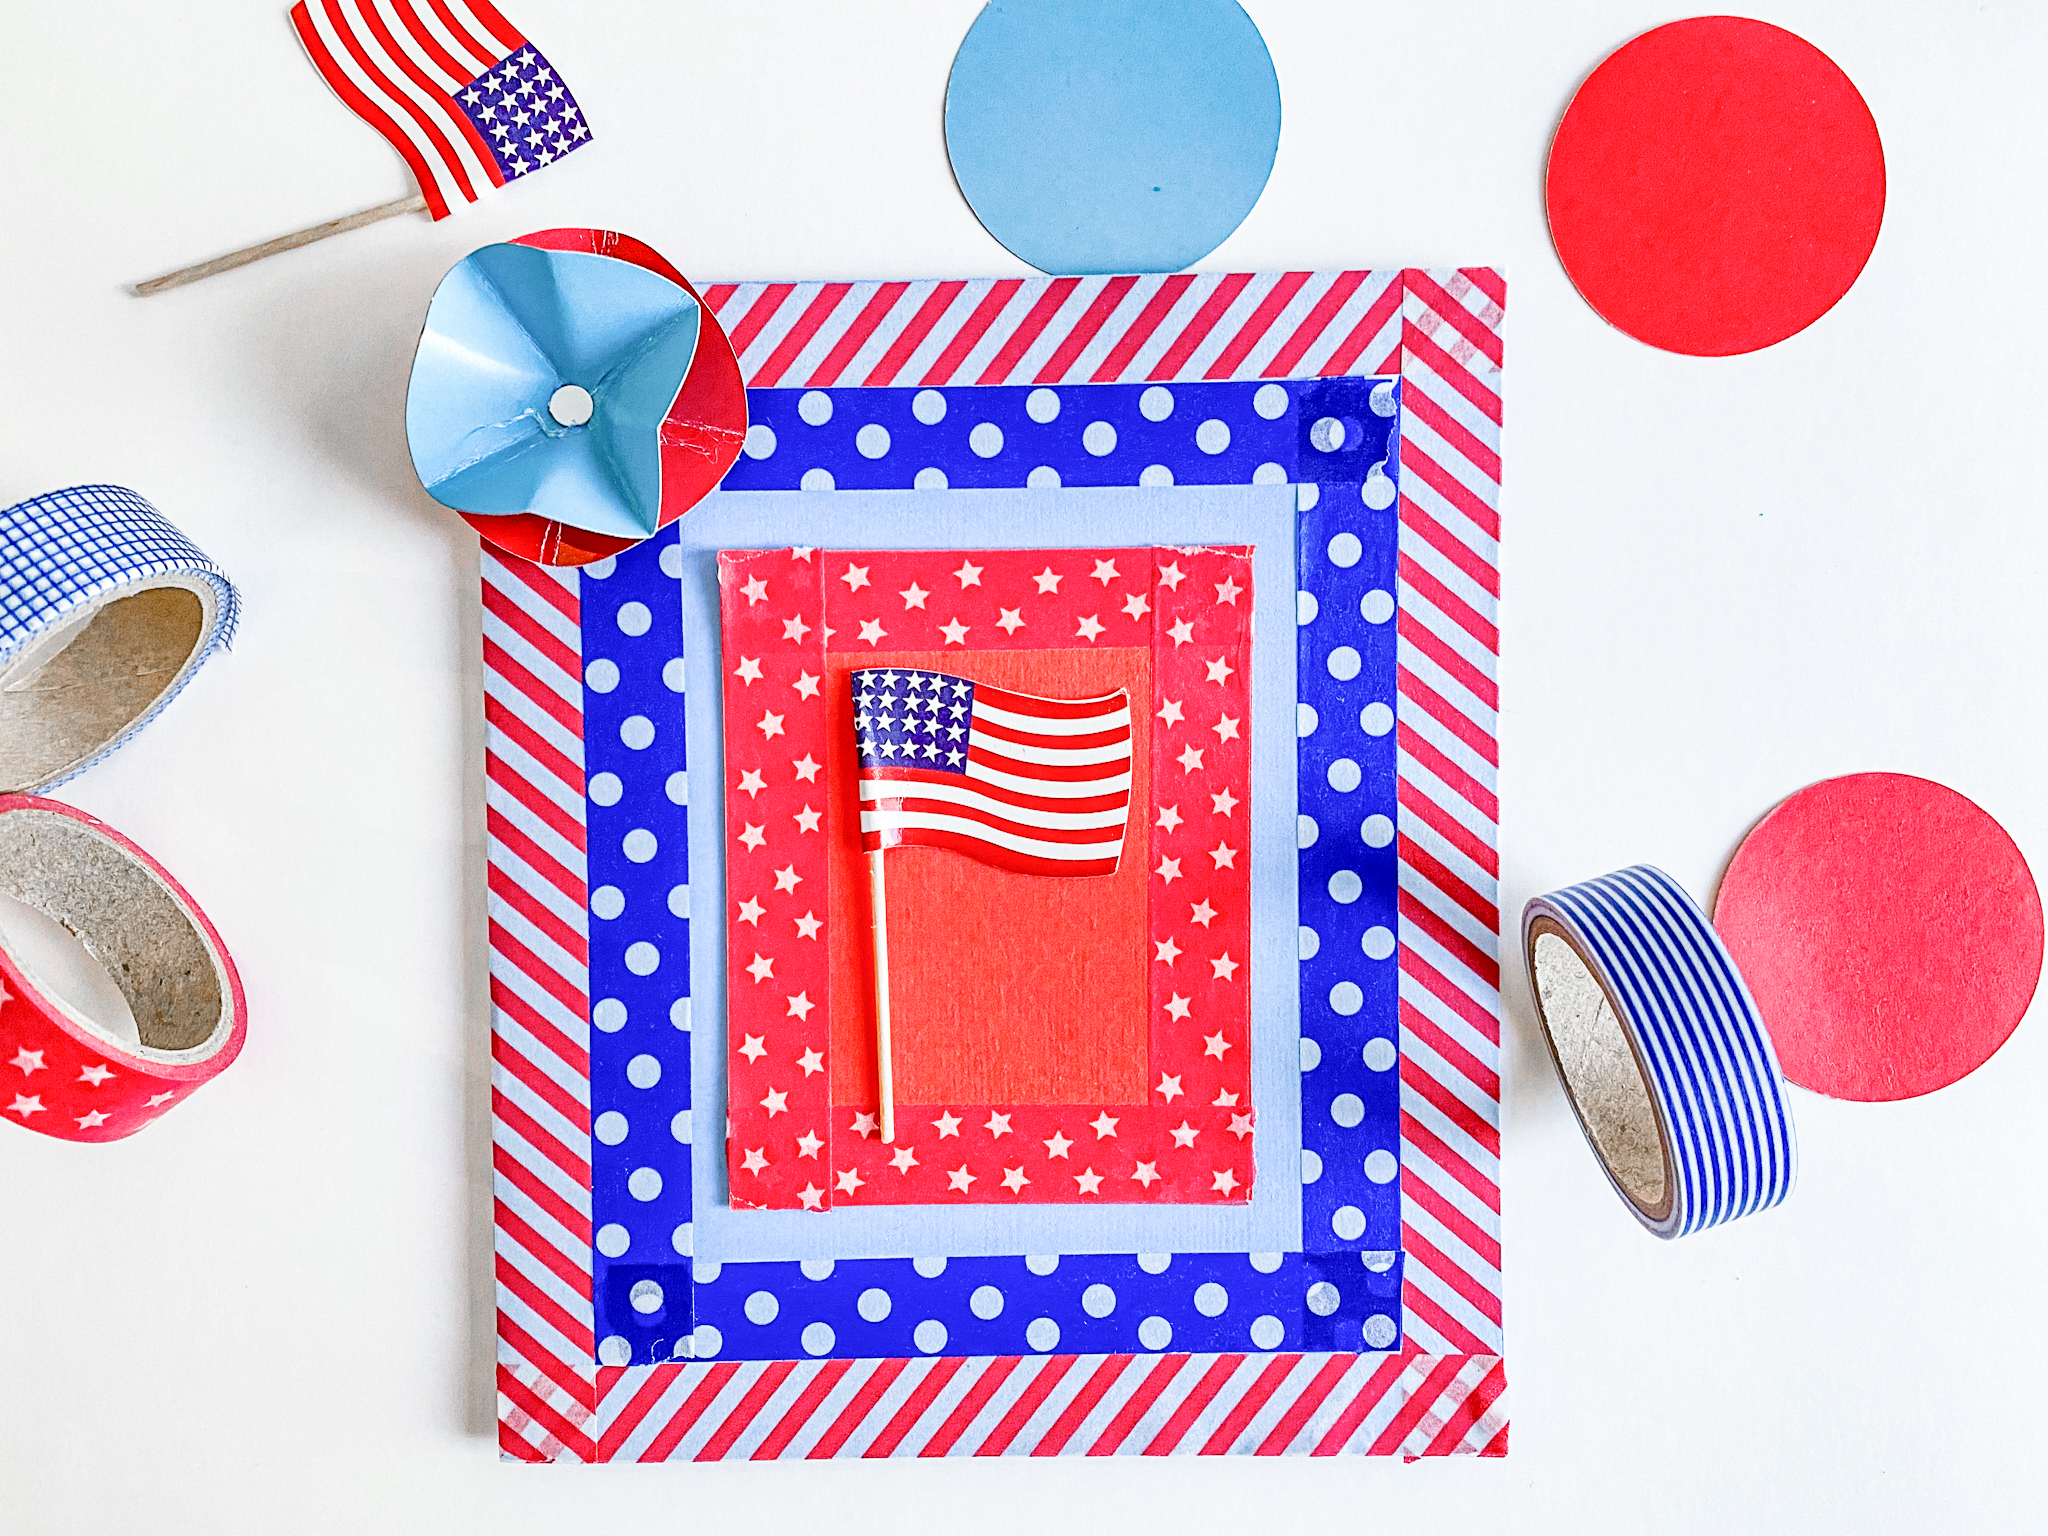 How to make Easy DIY Fourth of July Greeting Cards